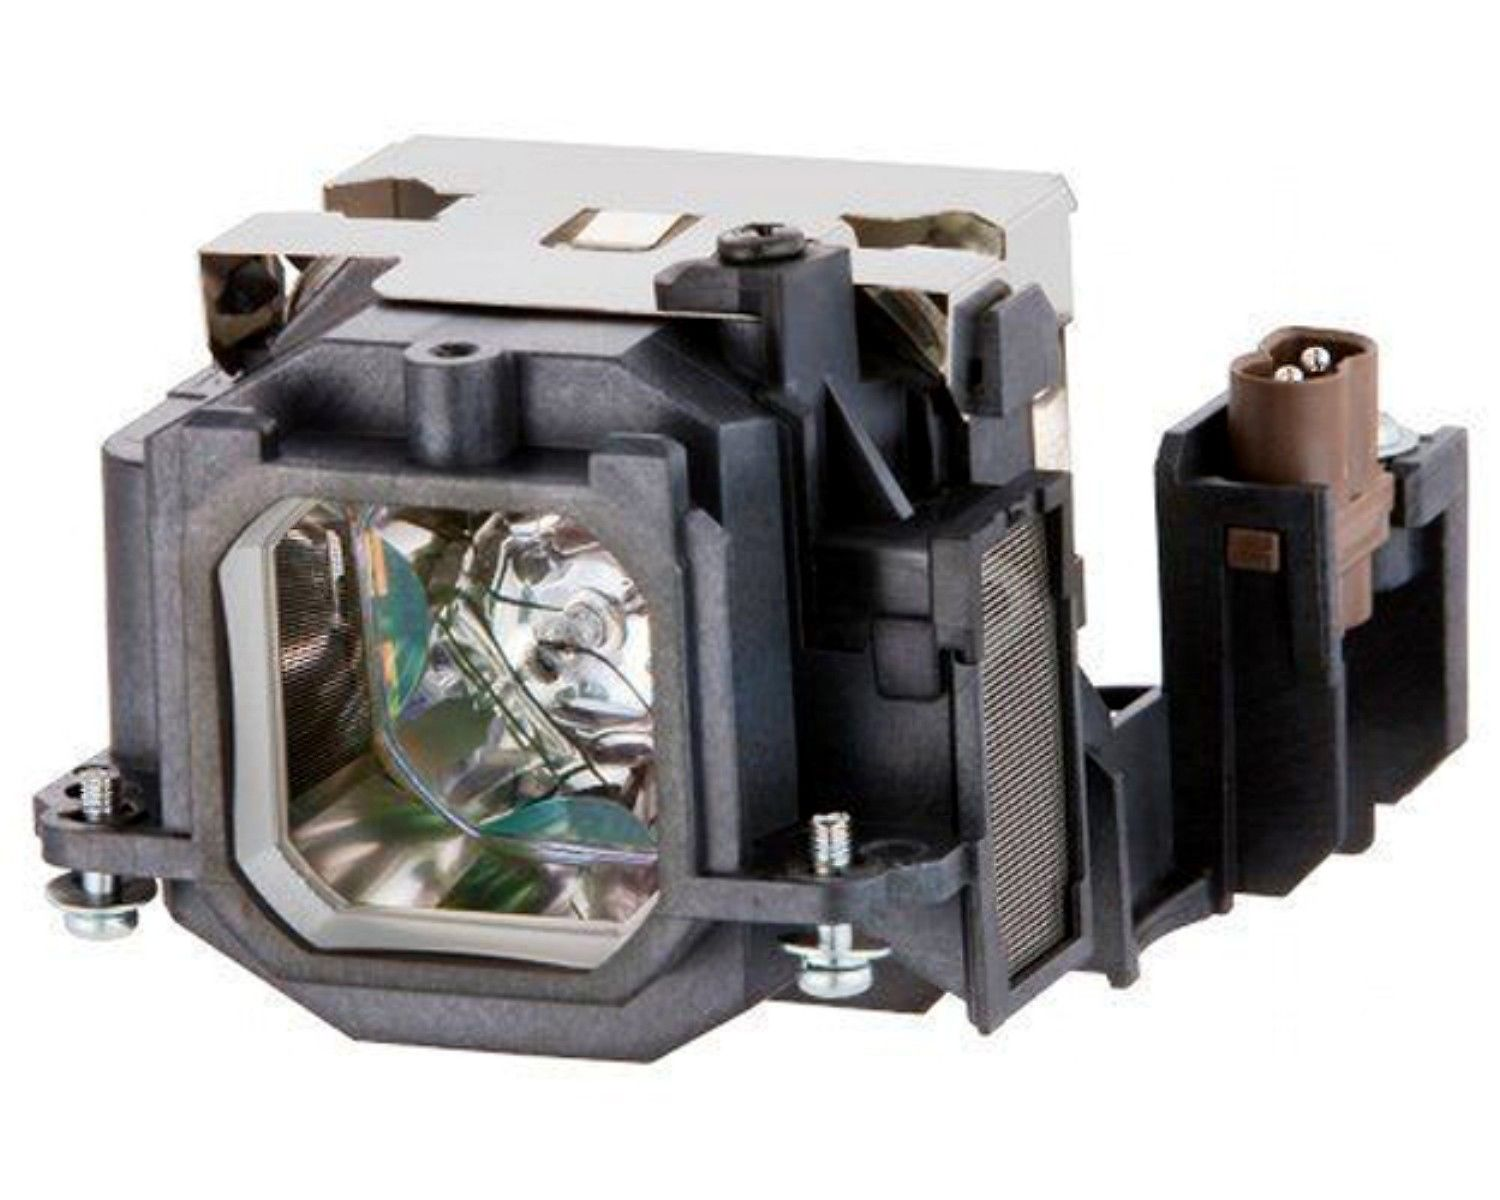 Projector Lamp Bulb ET-LAB2 ETLAB2 for Panasonic PT-LB1 PT-LB2 PT-LB1EA PT-LB2EA PT-ST10 PT-LB3E With Housing et lab50 for panasonic pt lb50 pt lb50su pt lb50u pt lb50e pt lb50nte pt lb51 pt lb51e pt lb51u projector lamp bulb with housing